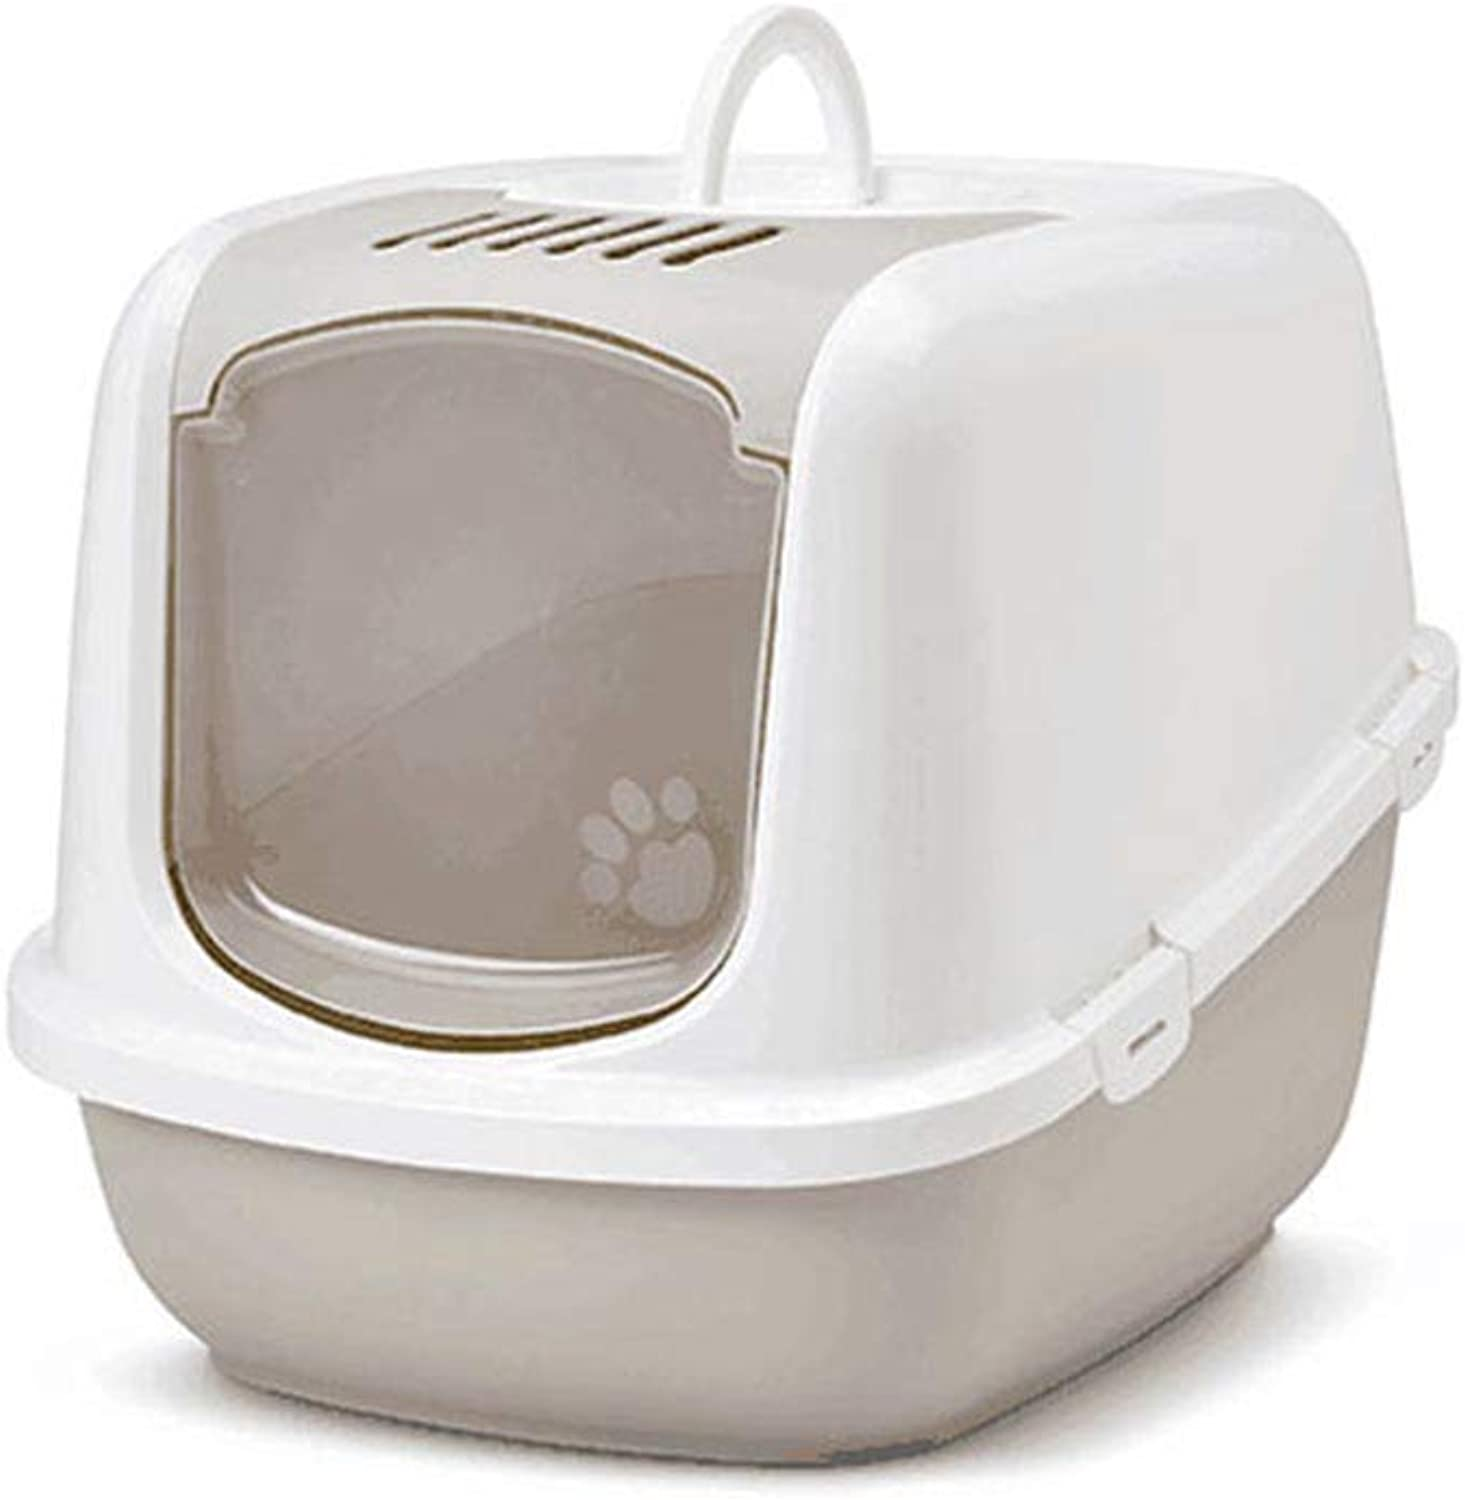 Cat Litter Box, Pet Toilet, Pet Washroom Fully Enclosed Extra Large Litter Boxes, Cat Pot Splash Prevention, Deodorization, Pet Potty Cat Sand Pot Cat Supplies,Brown